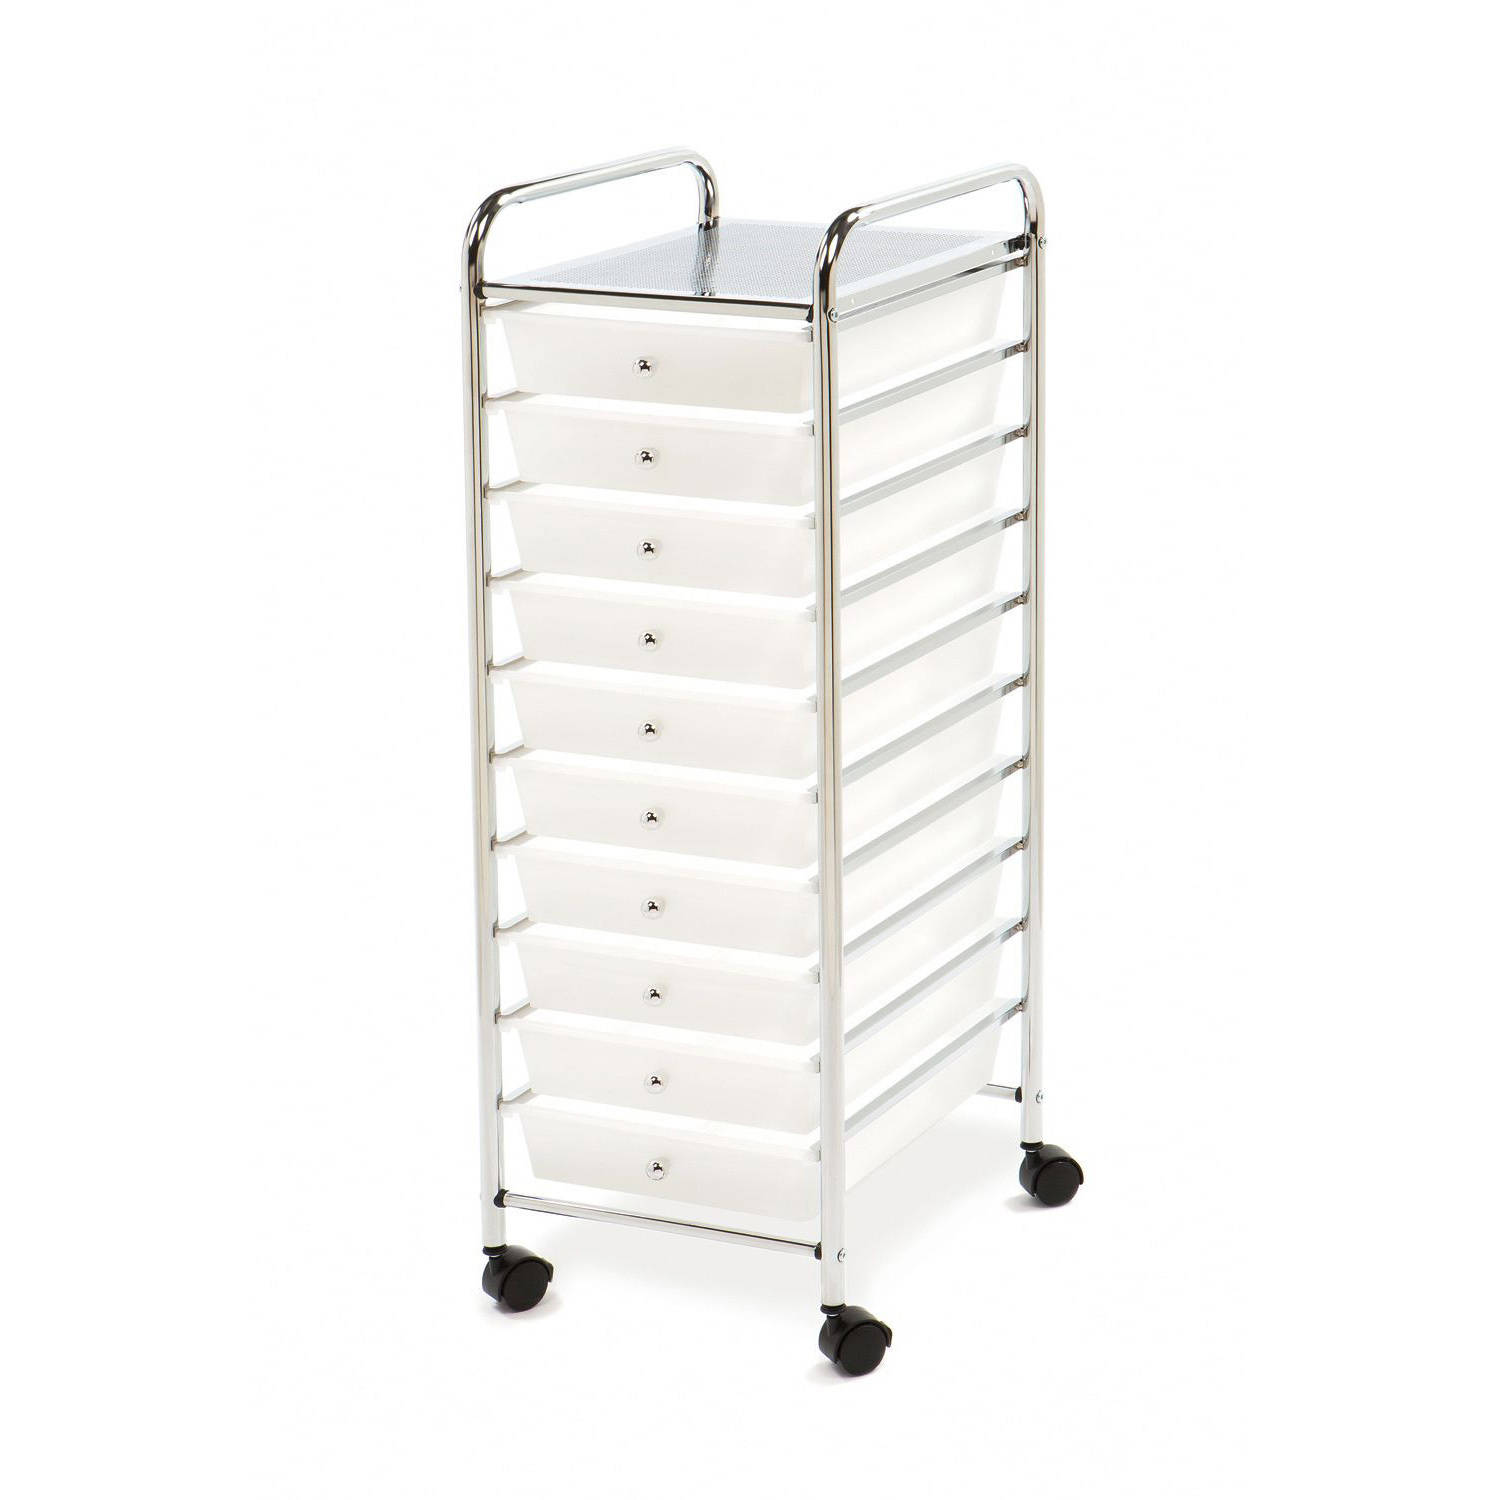 Seville Classics Large 10-Drawer Organizer Cart, Frosted White by Seville Classics